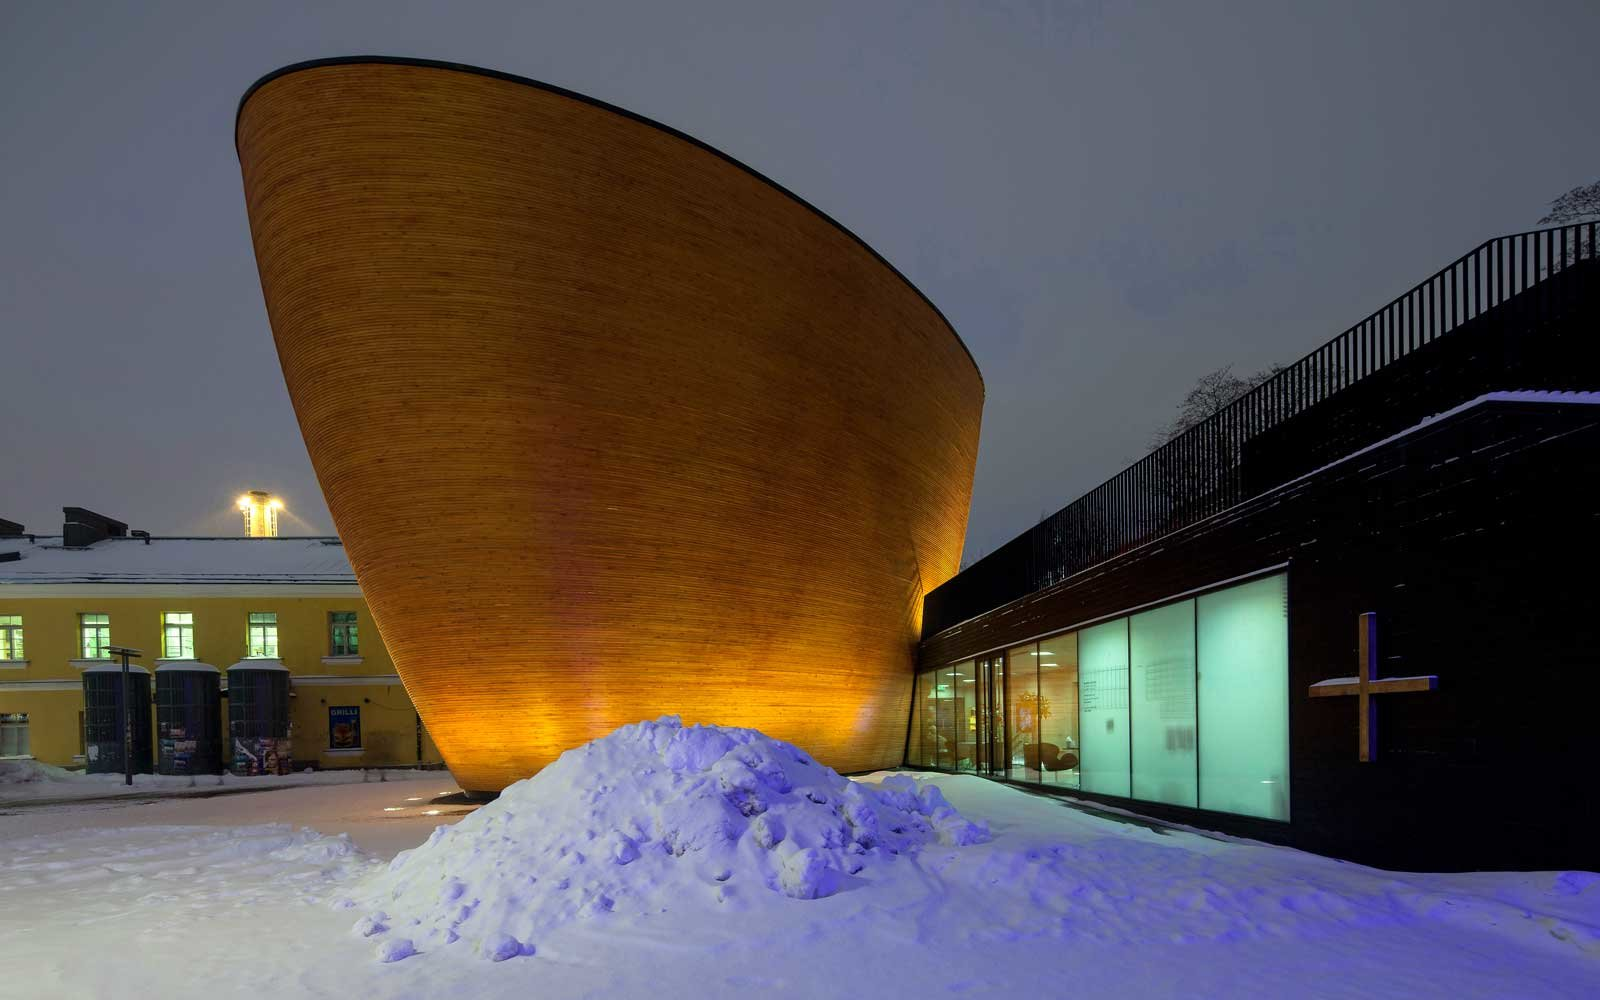 An exterior view of a modern building in Helsinki, Finland called the Kamppi Chapel of Silence.